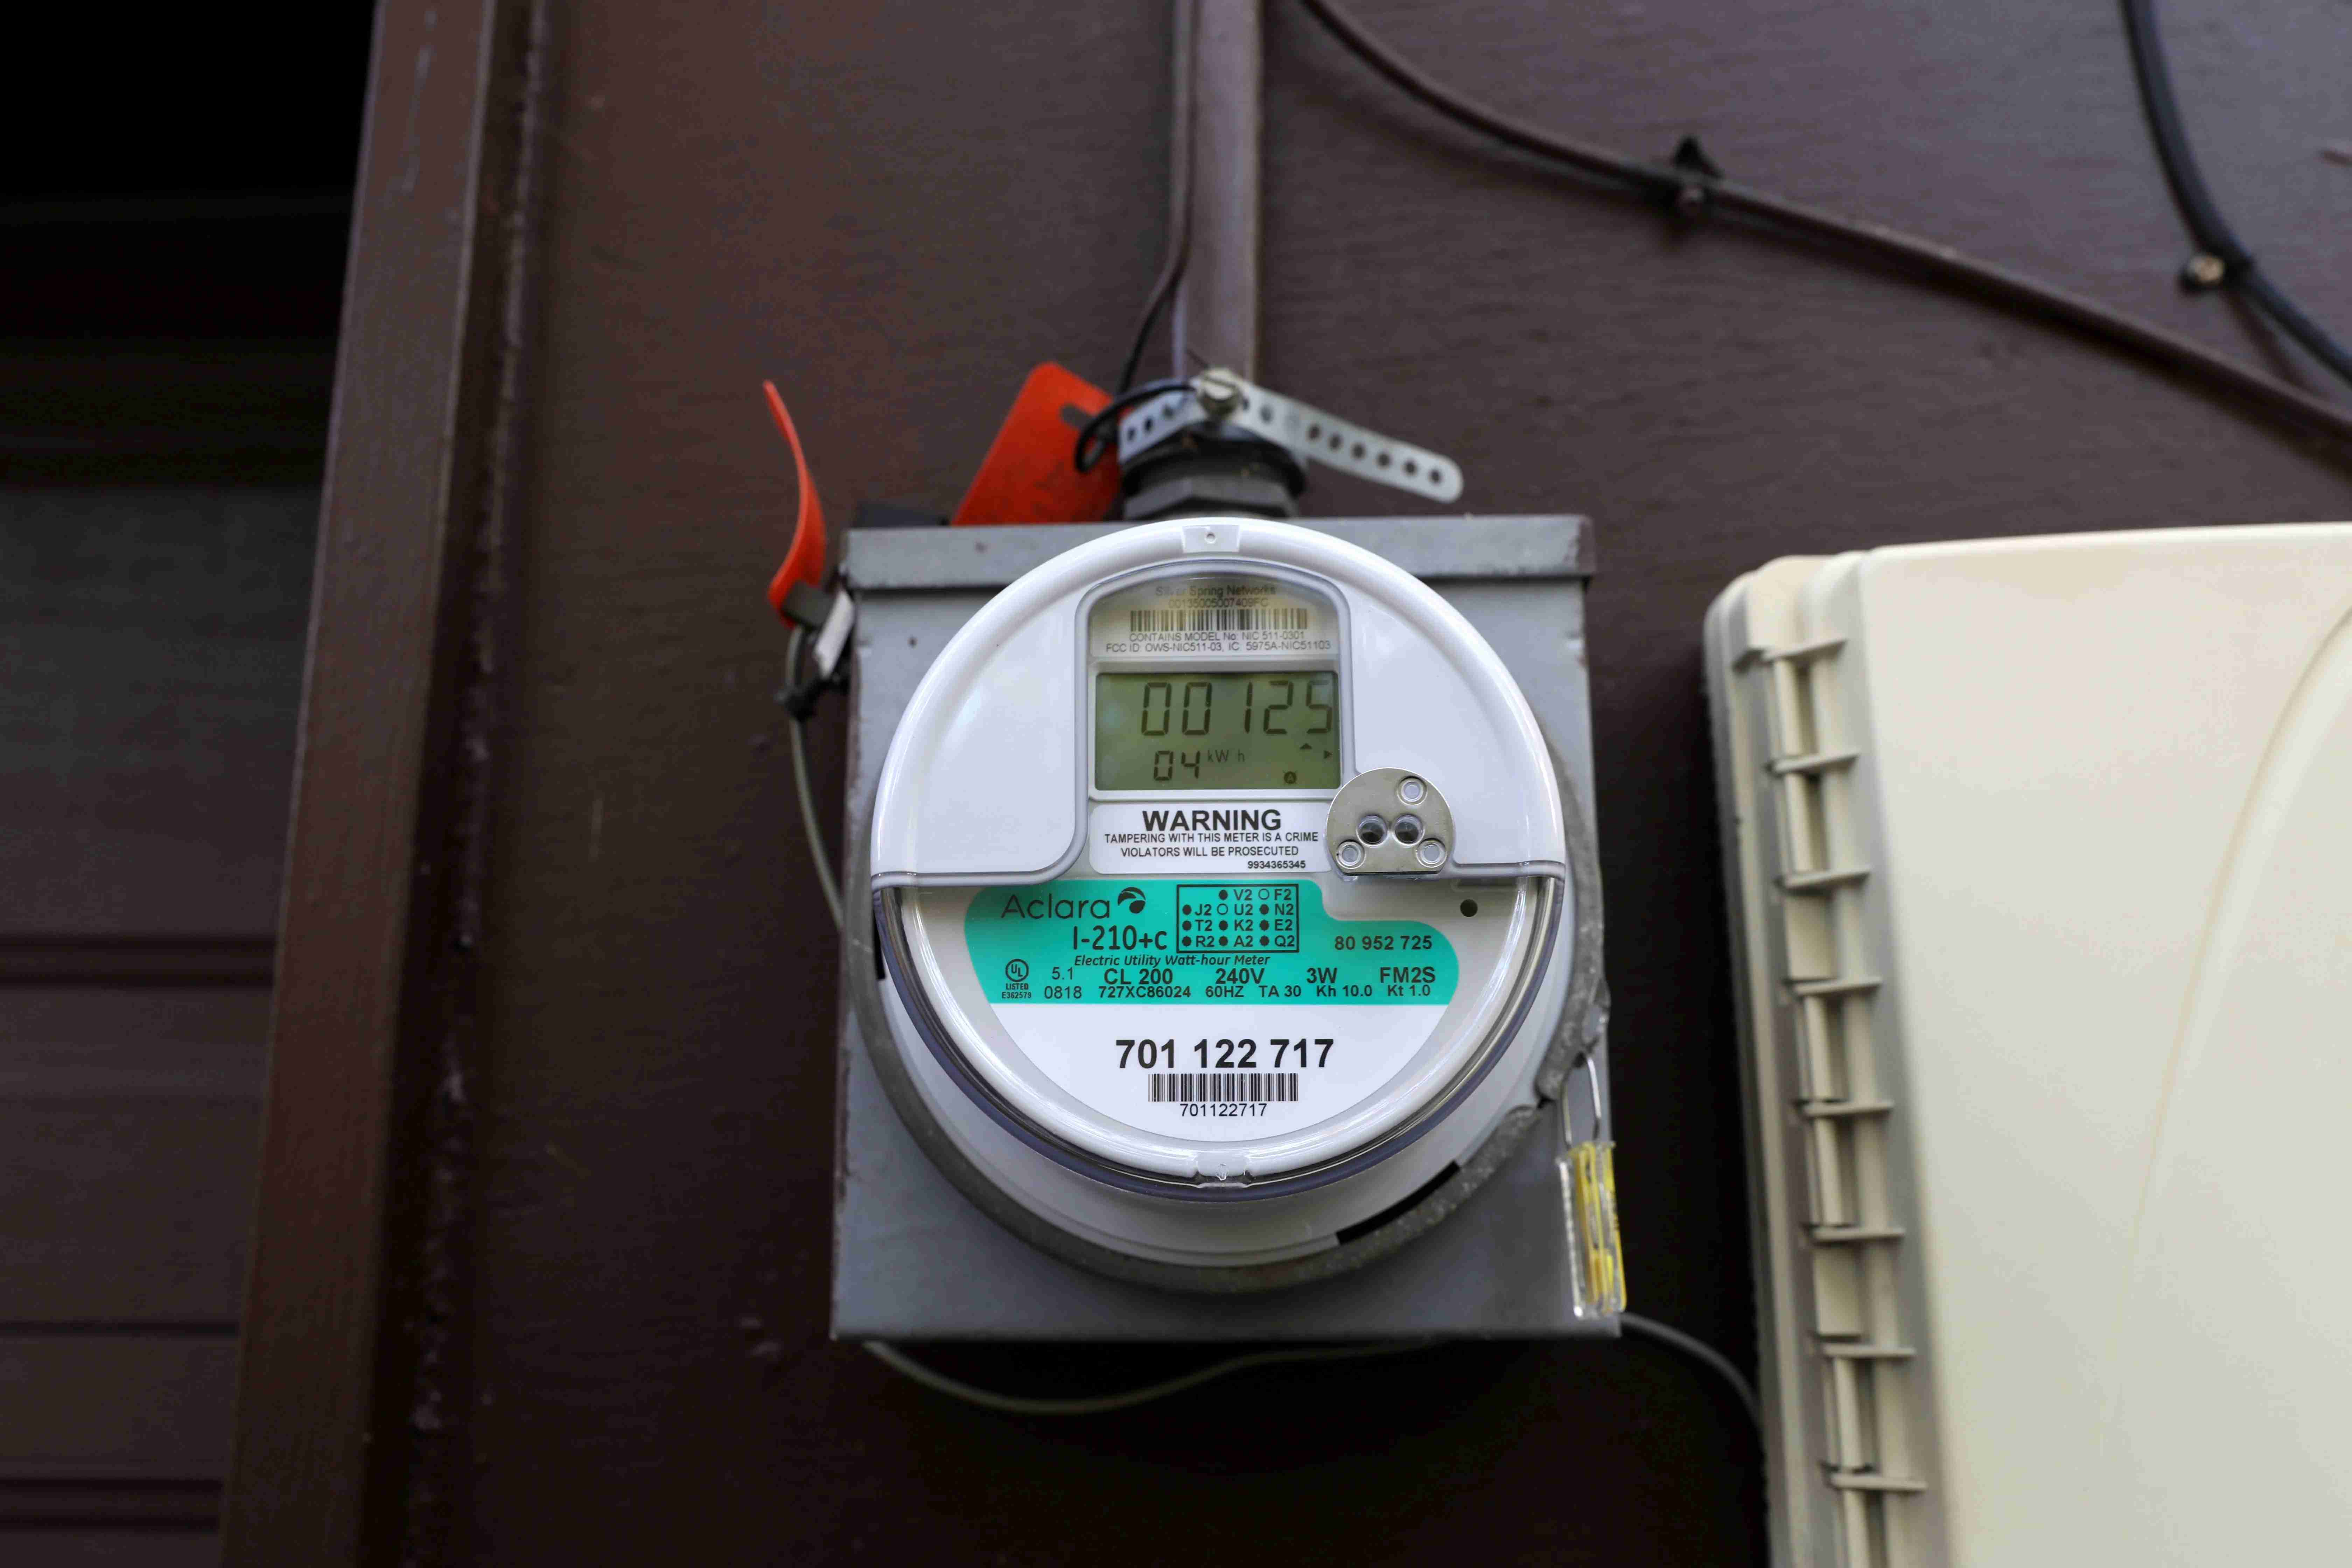 utility smart meter installations worry rockland and westchester homeowners on privacy [ 6720 x 4480 Pixel ]